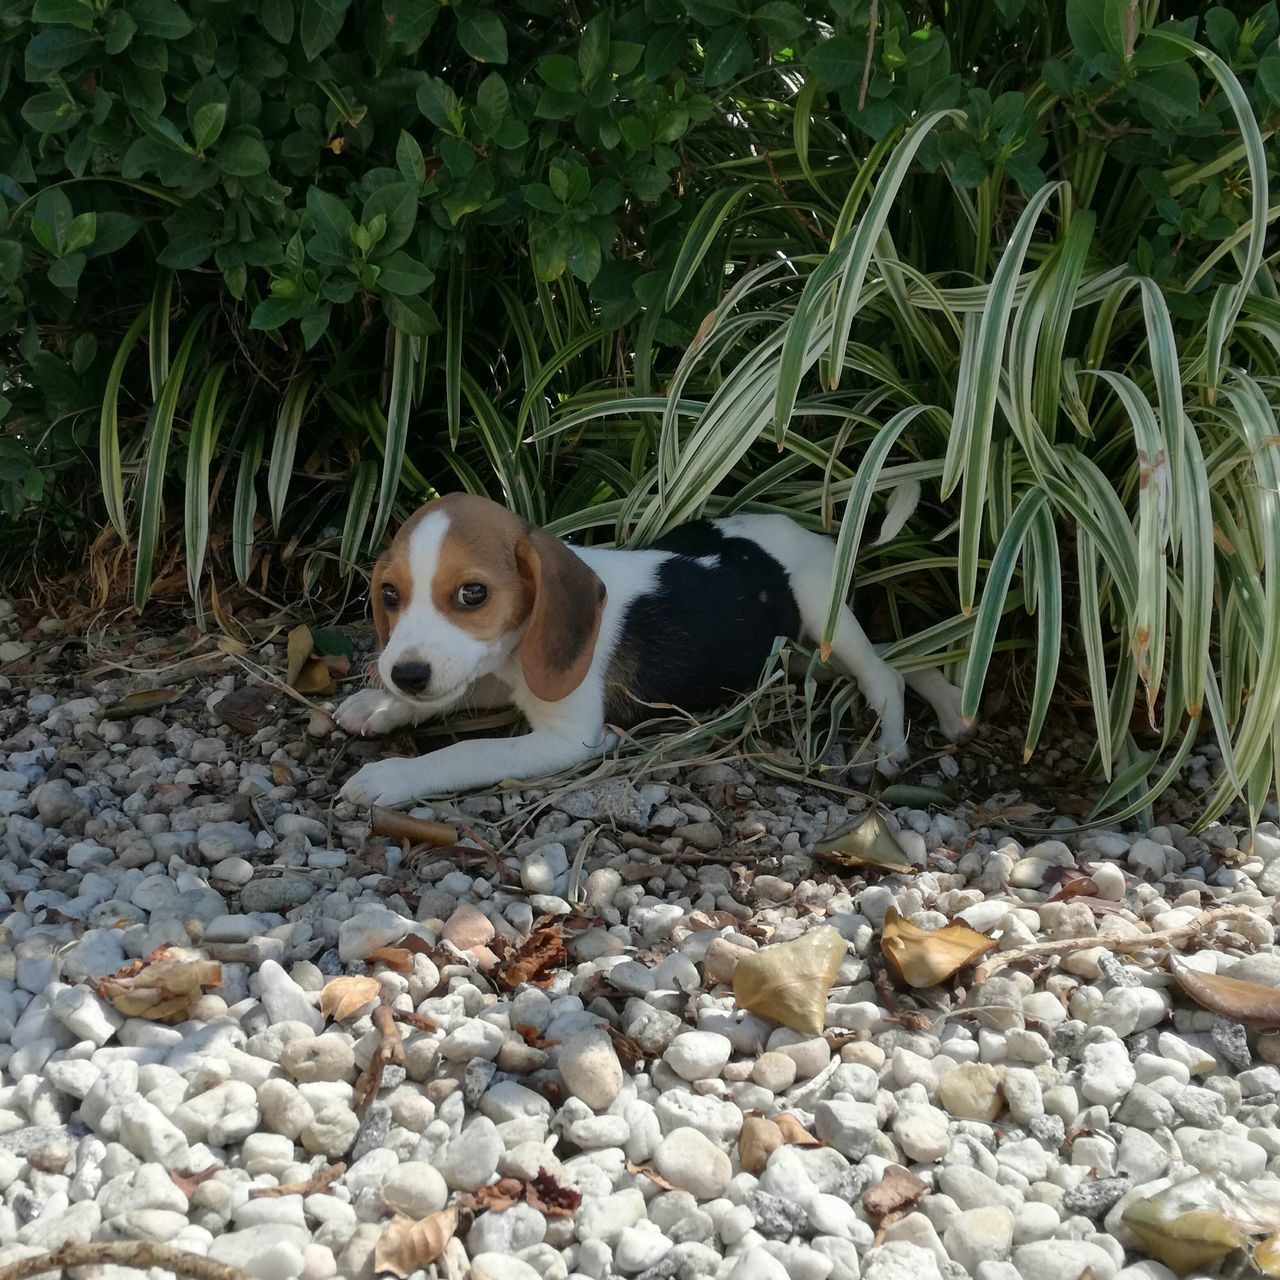 one animal, dog, animal themes, pets, pebble, domestic animals, mammal, day, outdoors, no people, nature, portrait, beagle